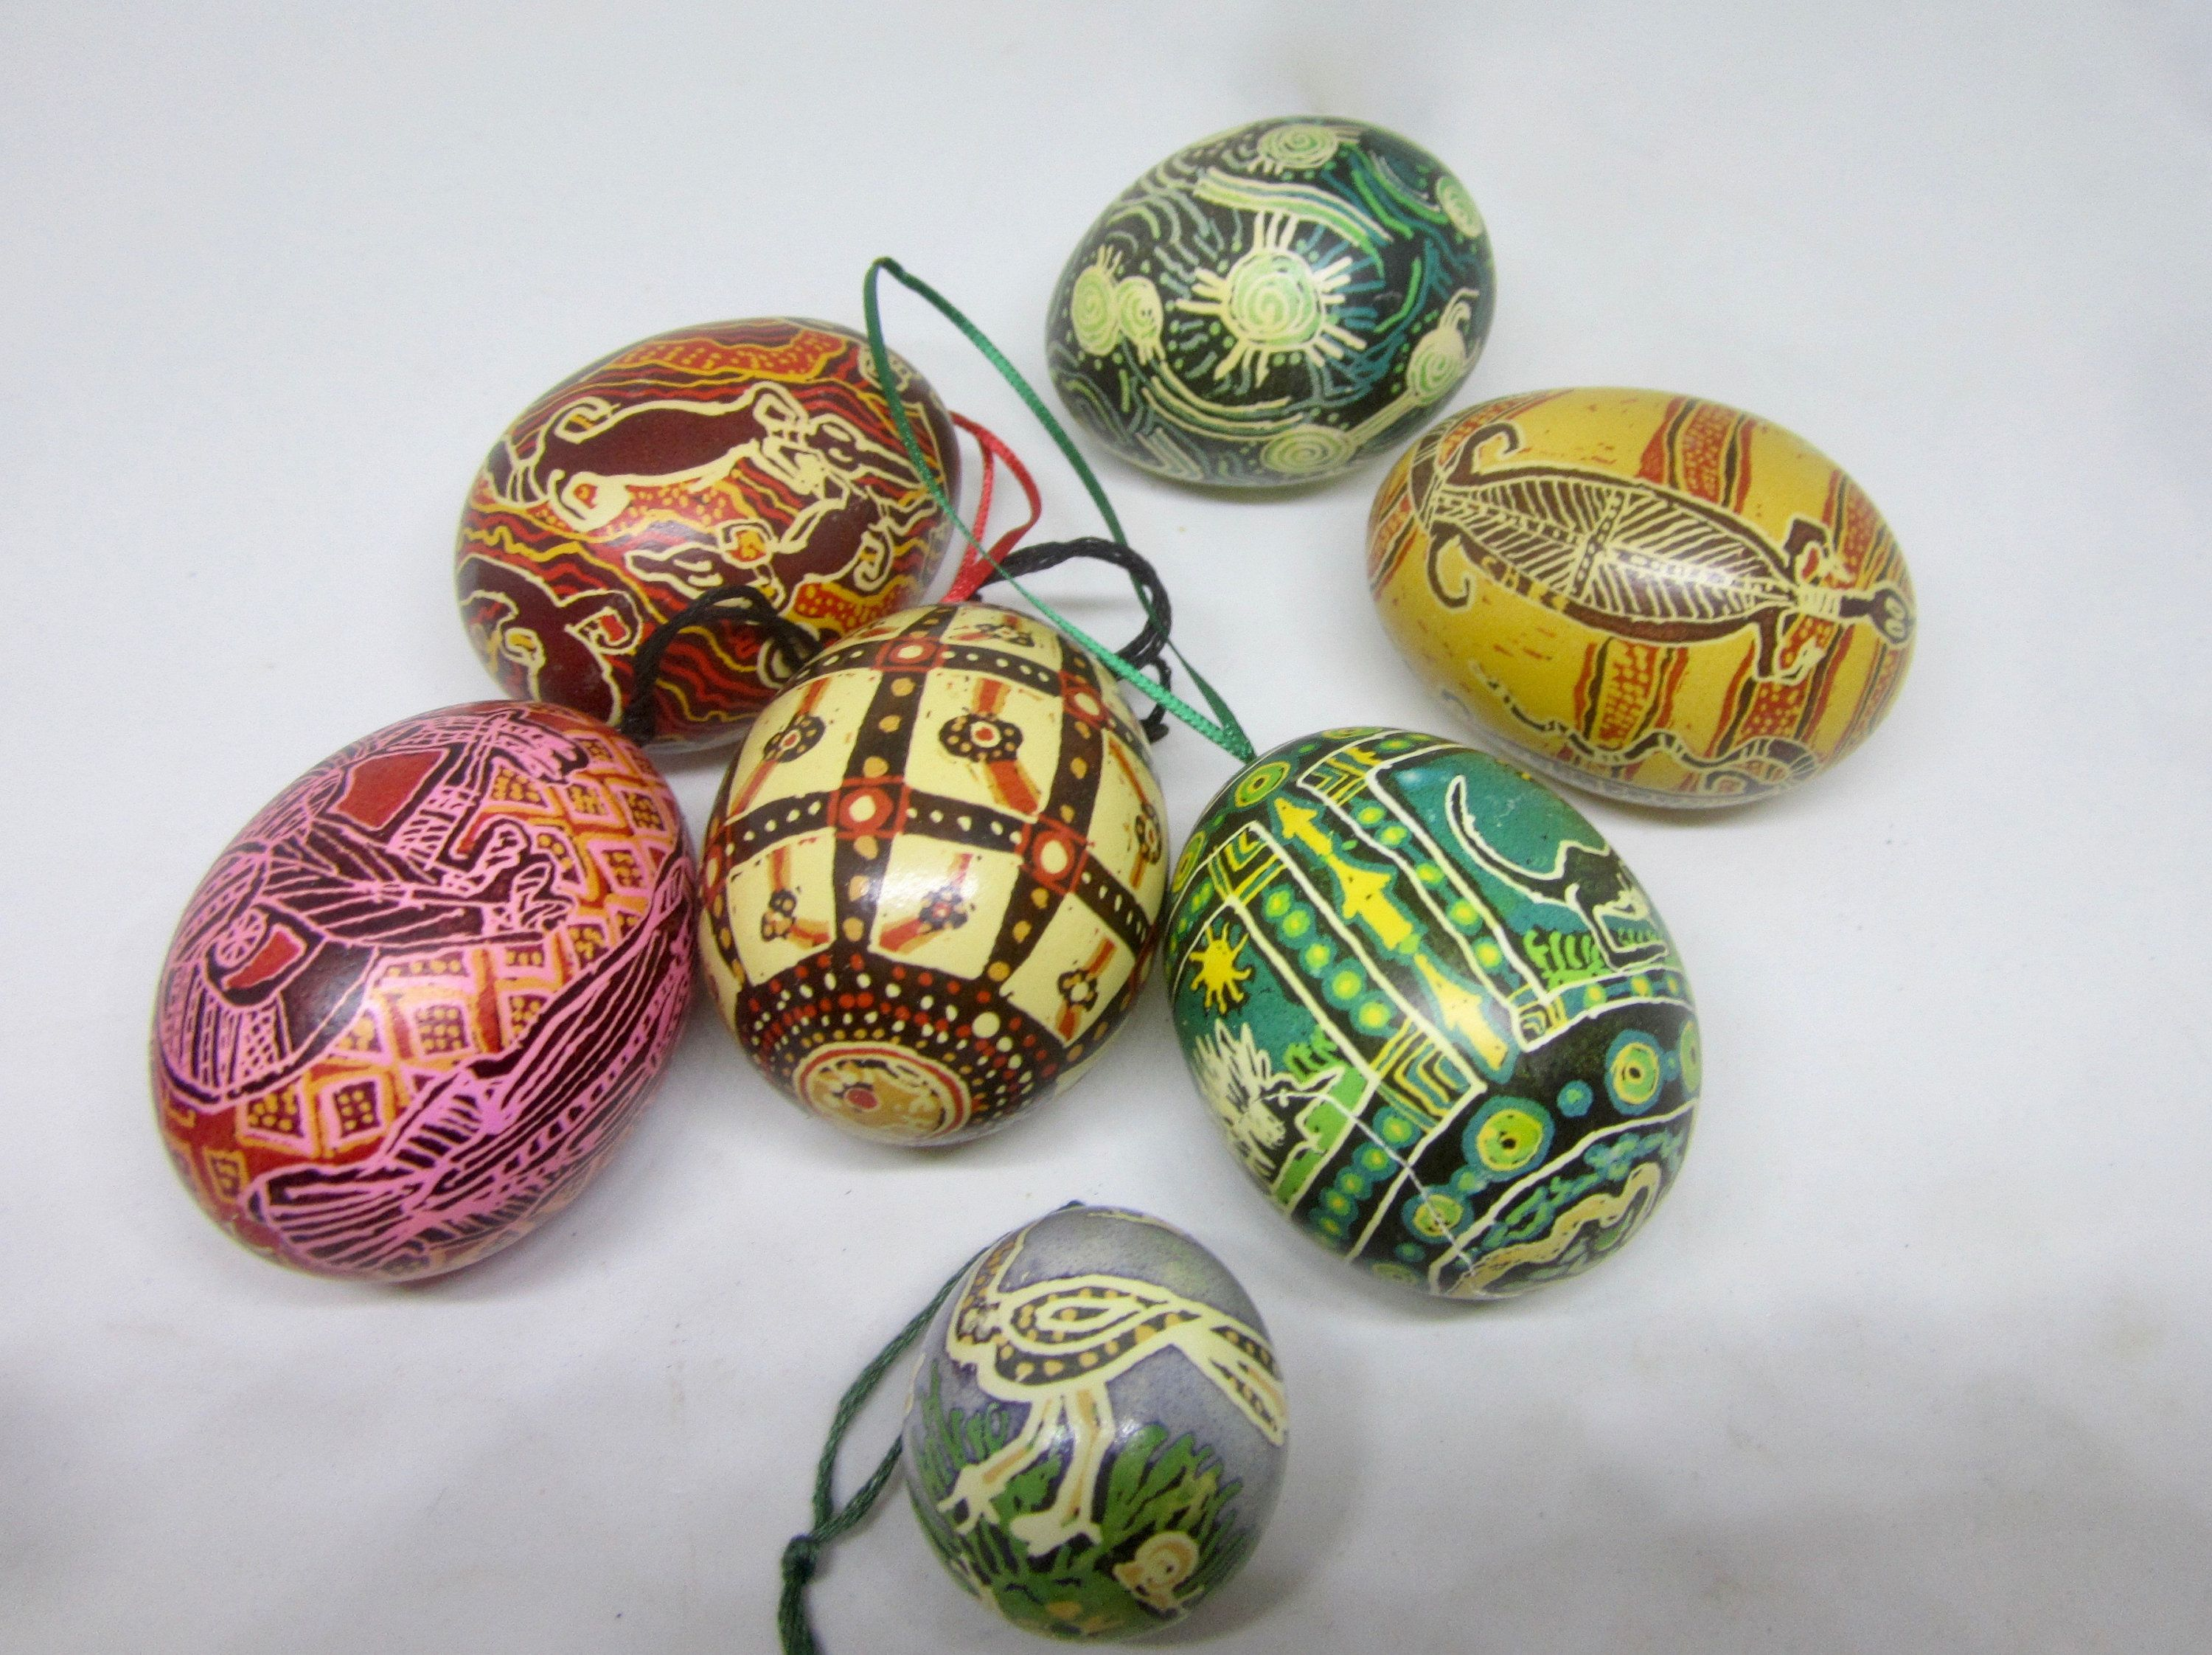 Vintage Decorative Easter Eggs With Australian Aboriginal